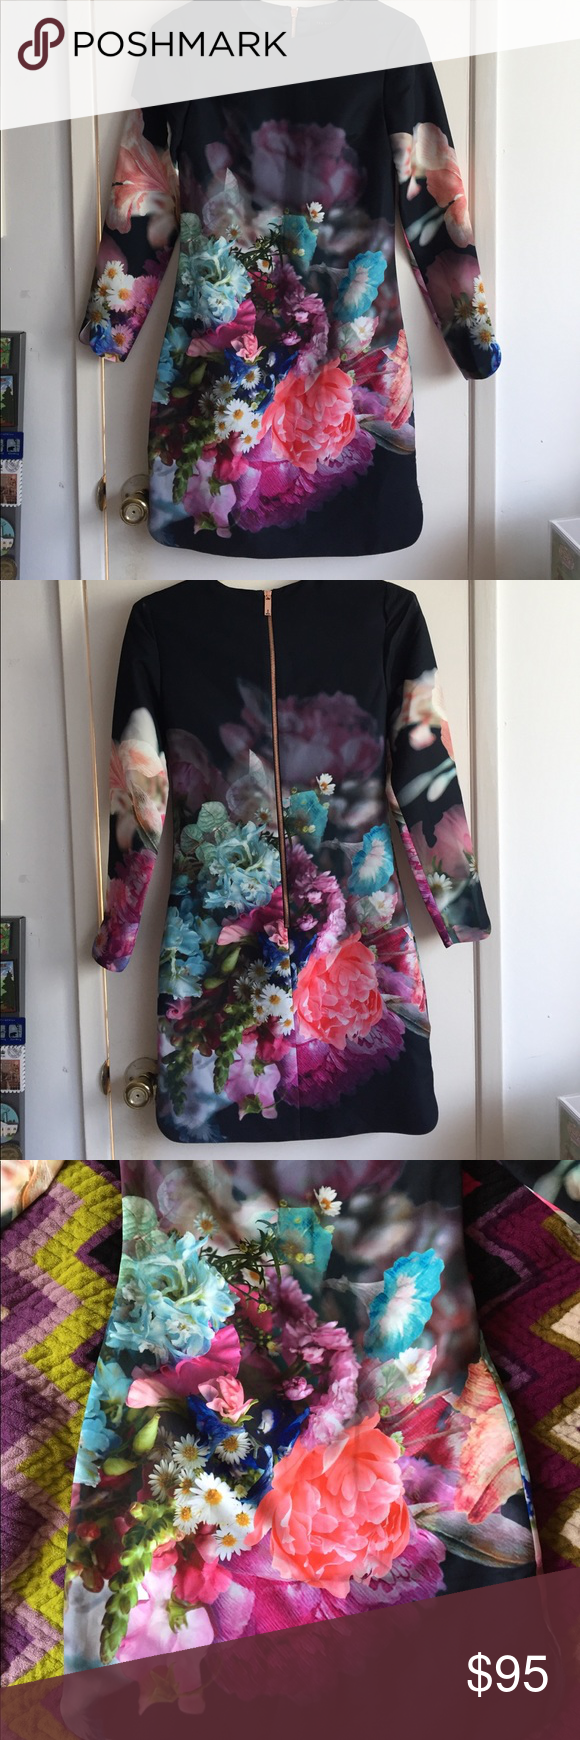 8d47c69d1e393 NWT Ted Baker Long Sleeve Vyra Floral Tunic Dress This is a gorgeous Ted  Baker